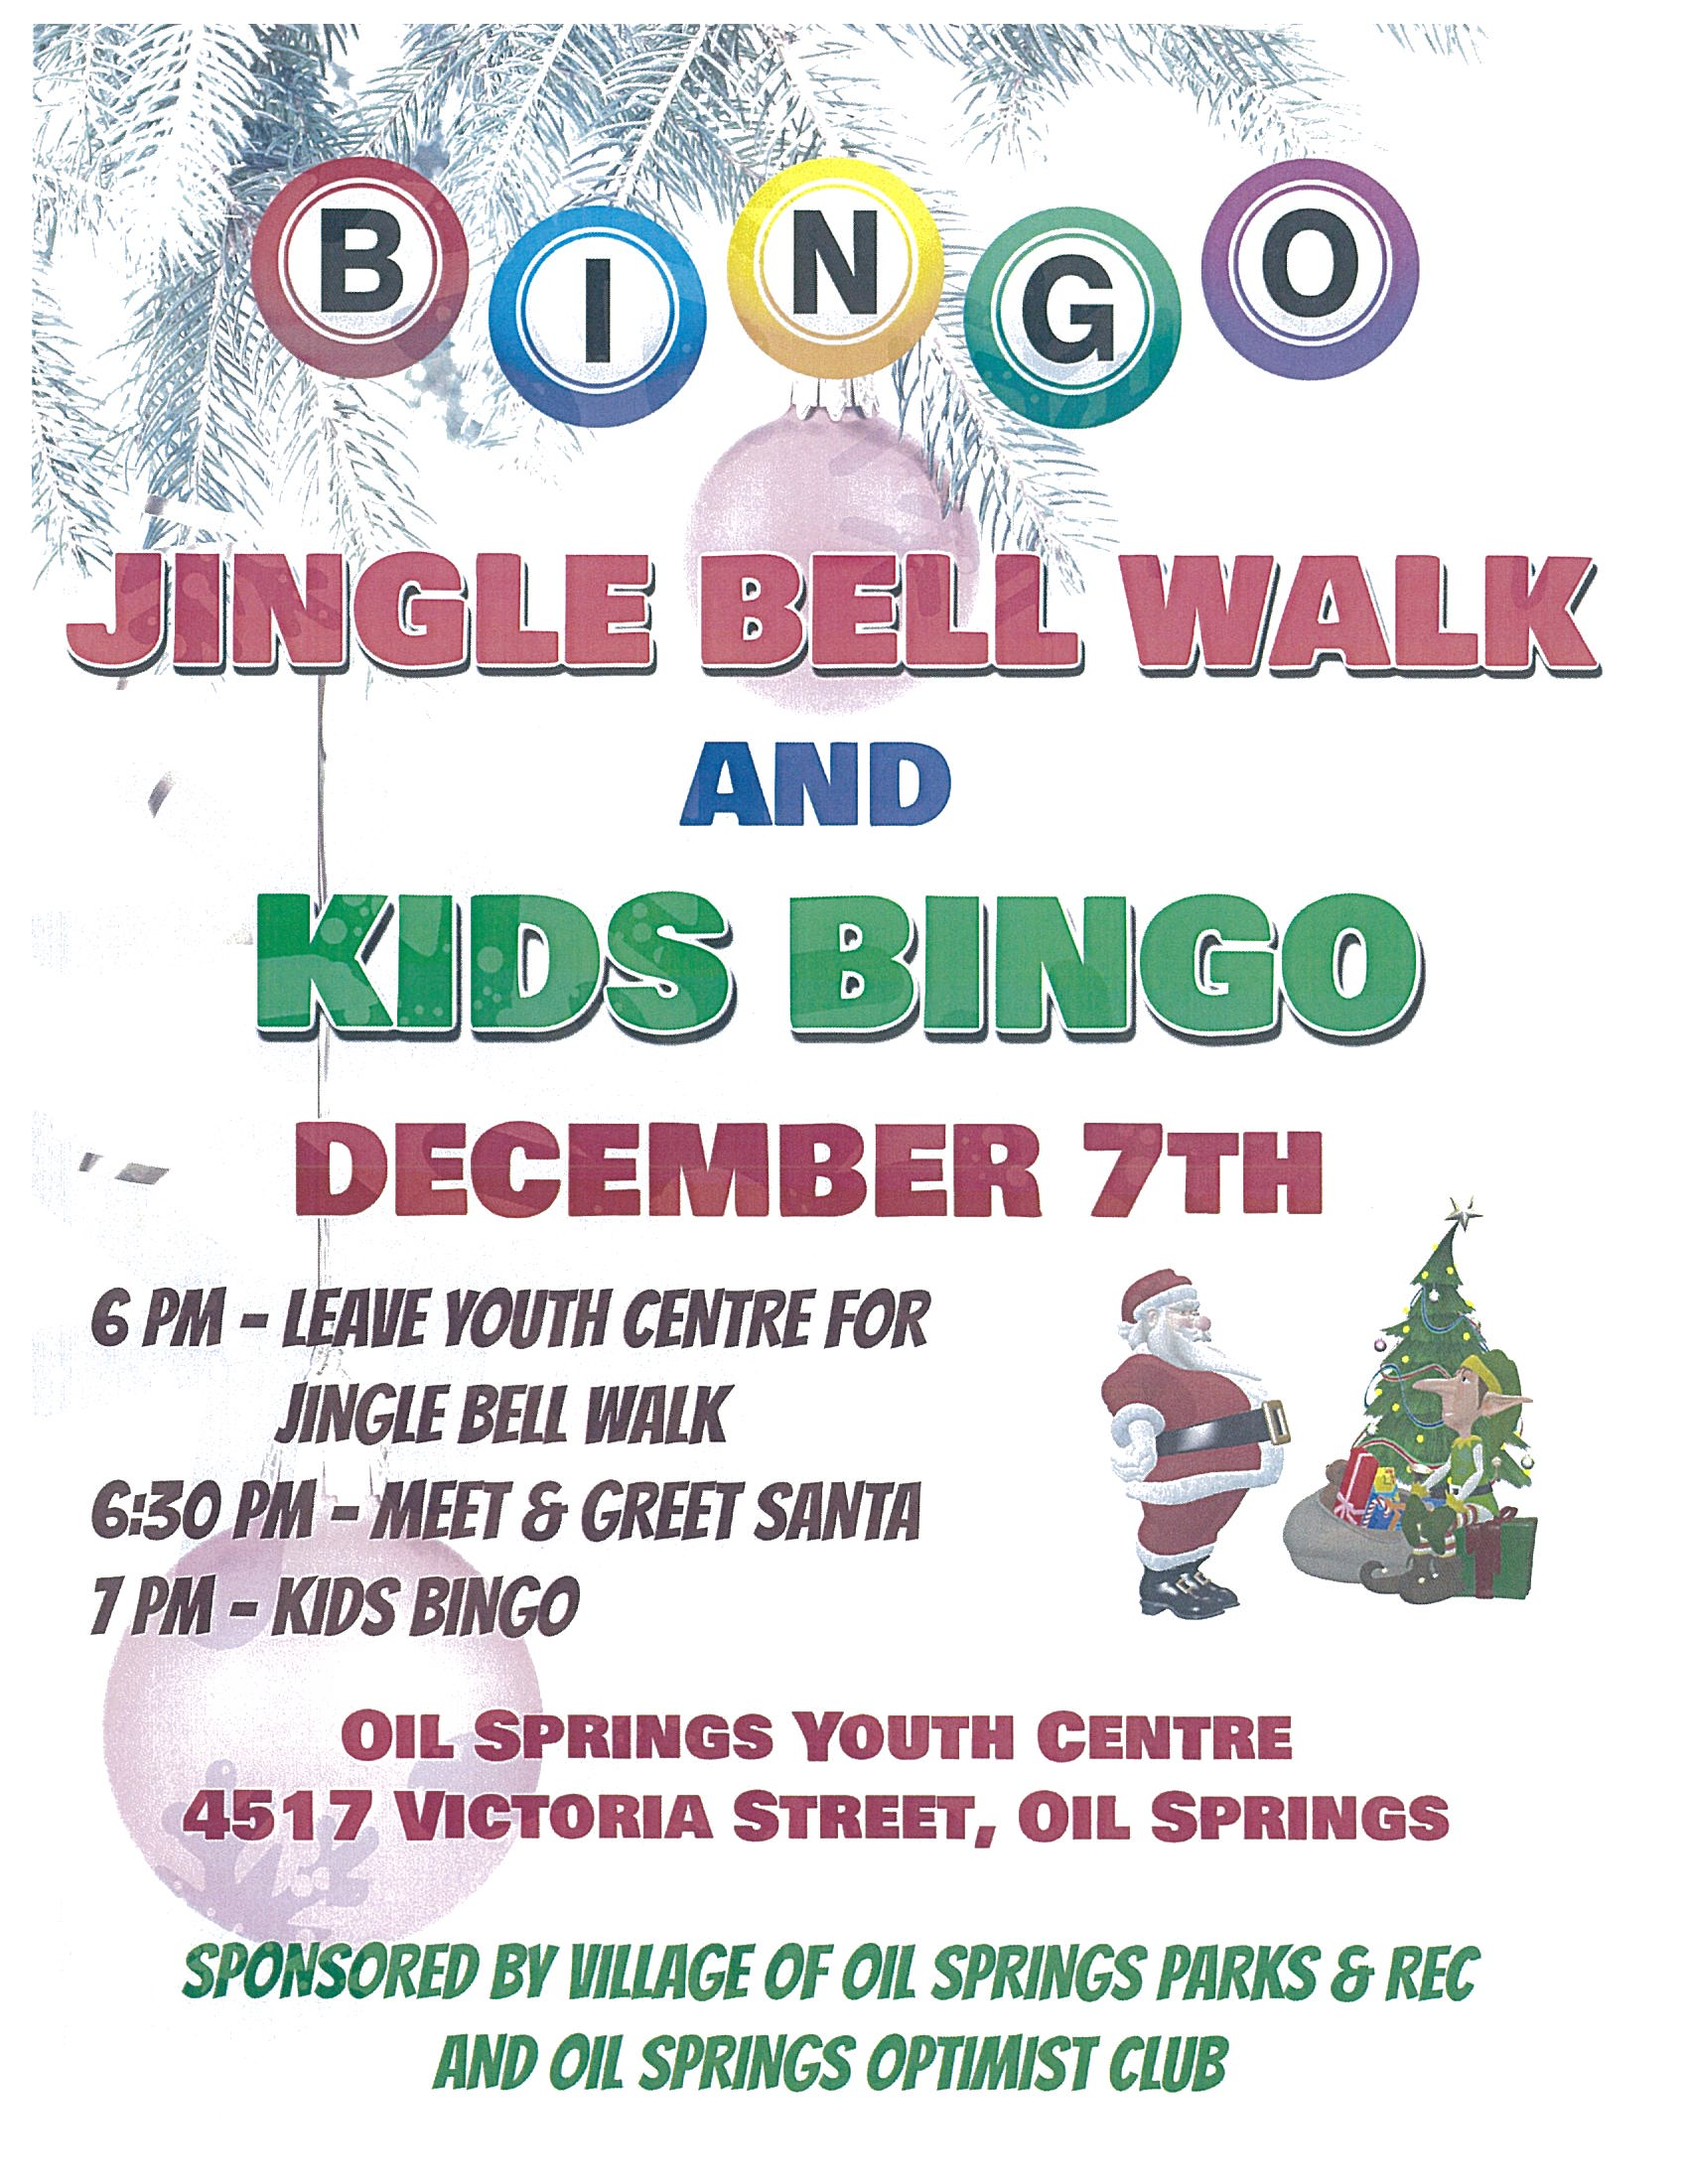 Jingle Bell Walk & Kids Bingo @ Oil Springs Youth Centre